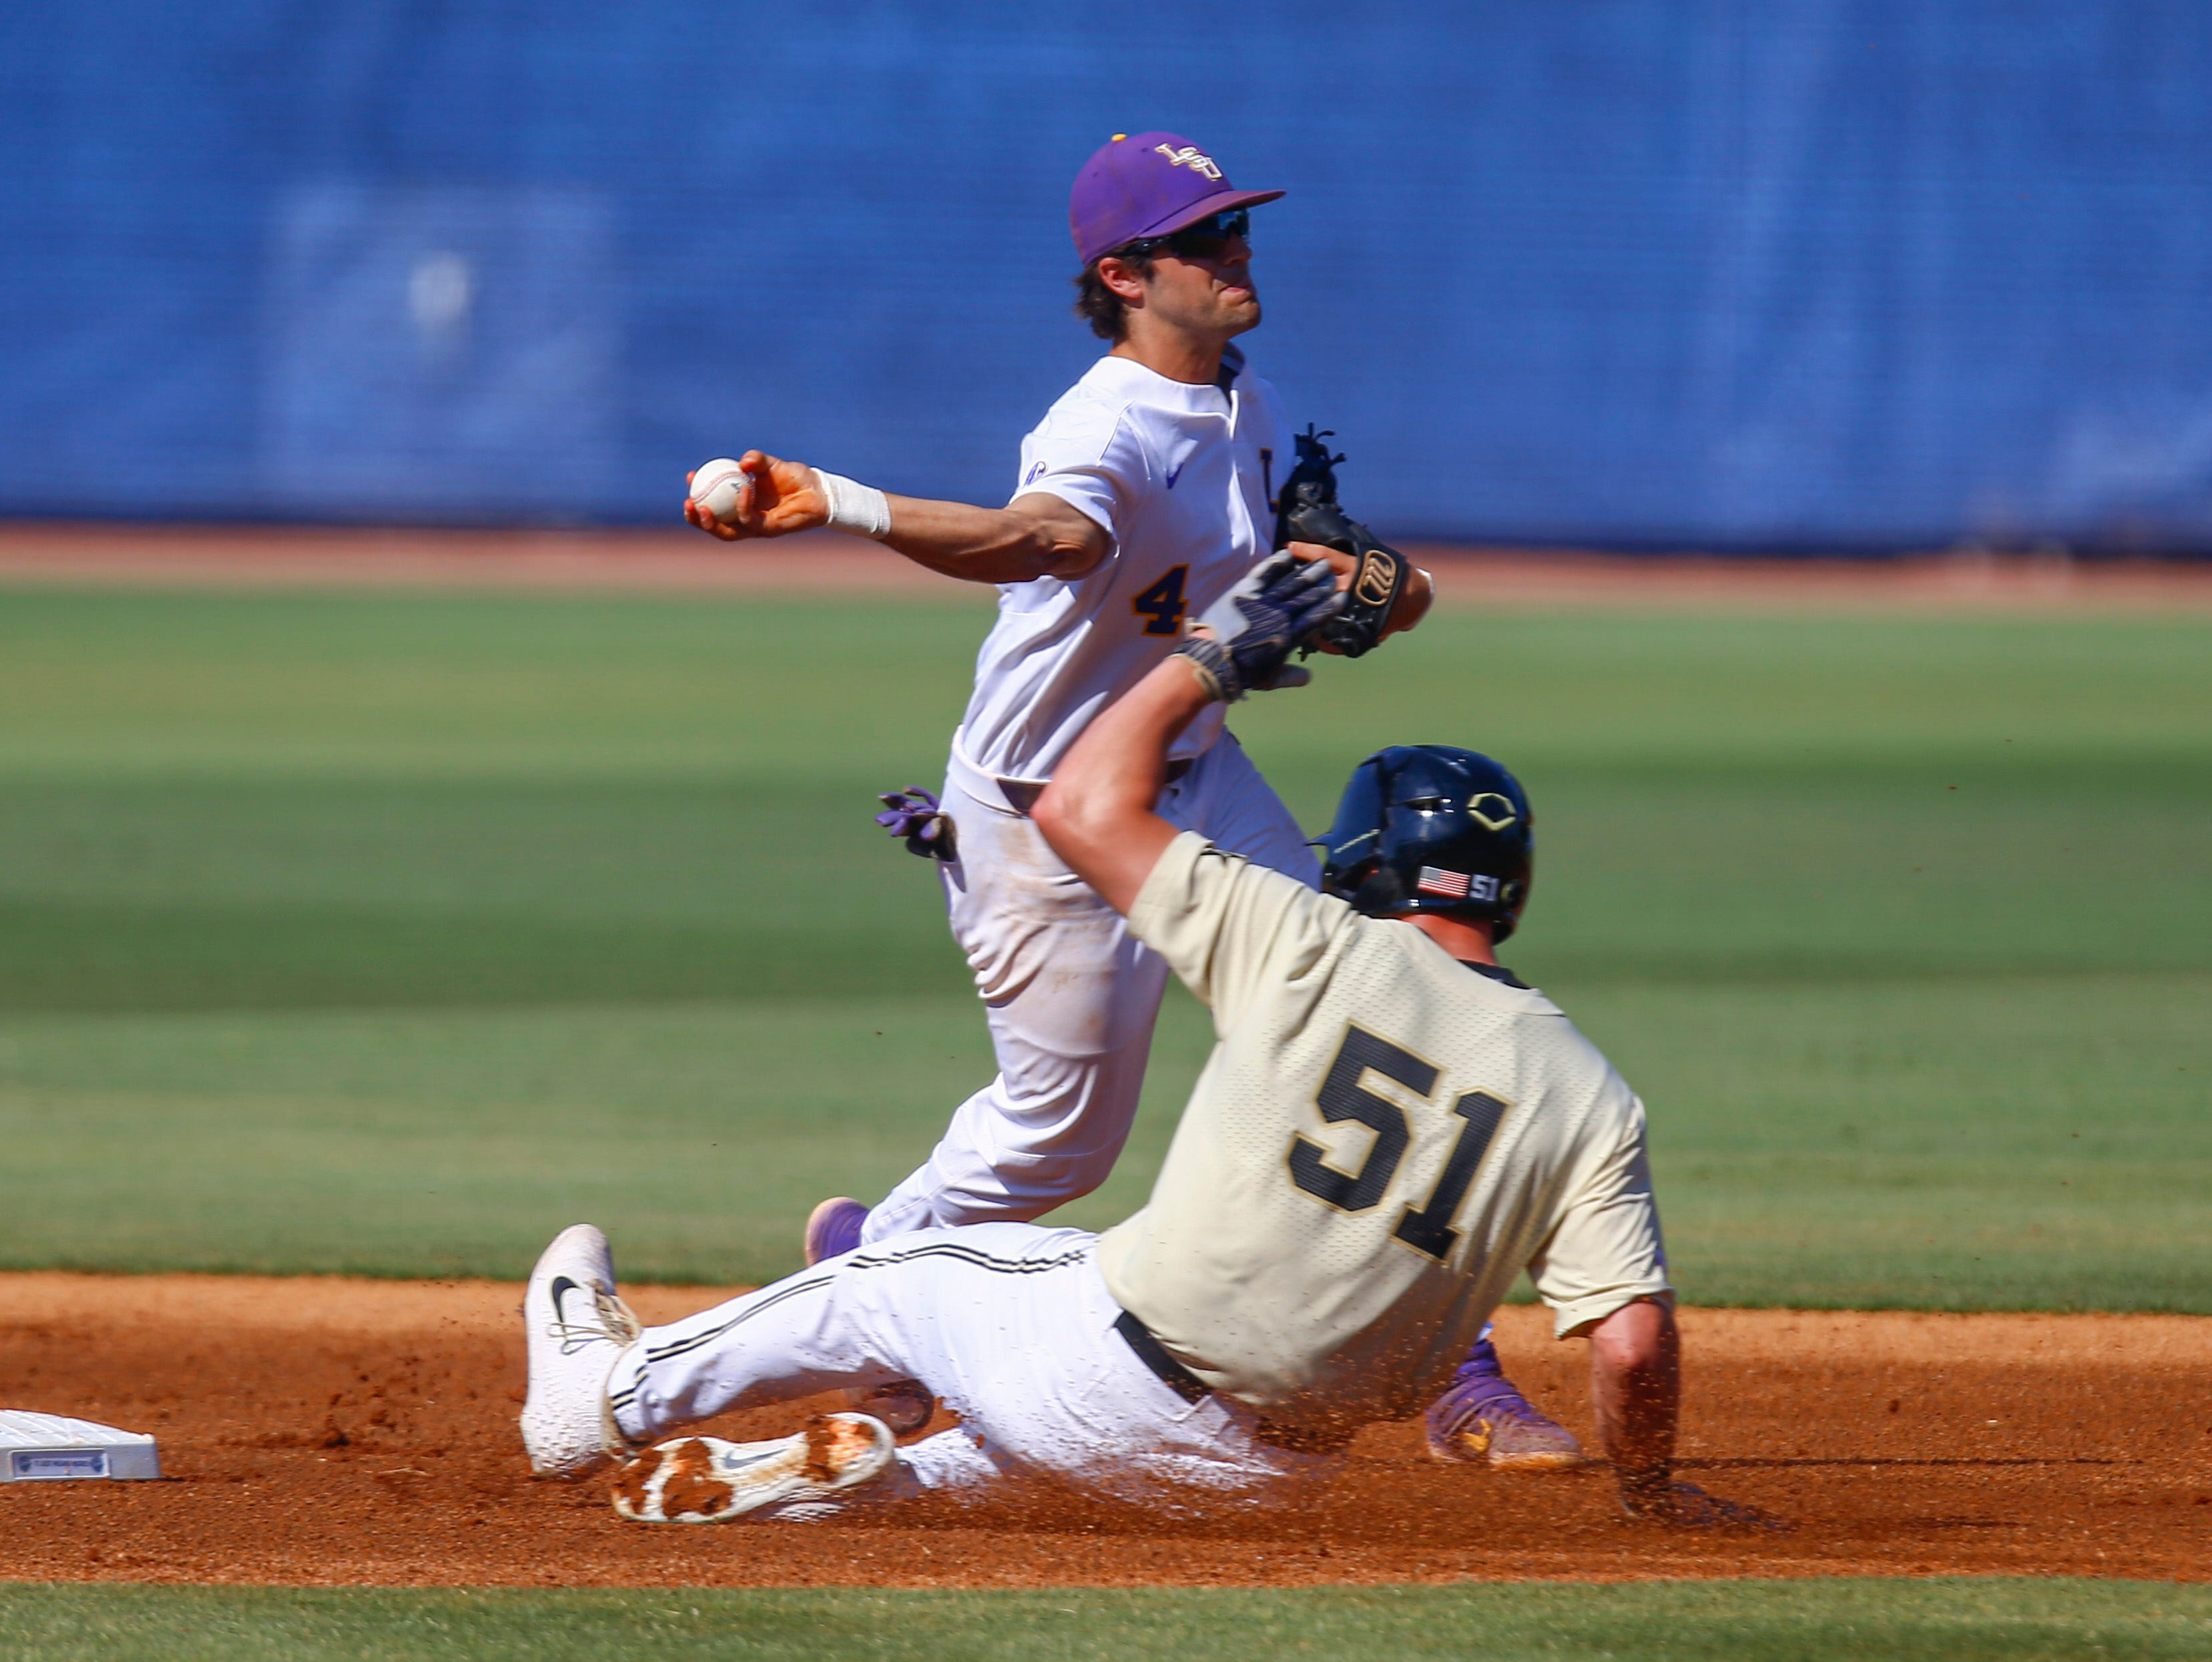 LSU eliminated from SEC Tourney by Vanderbilt, but expected to get host seed Sunday